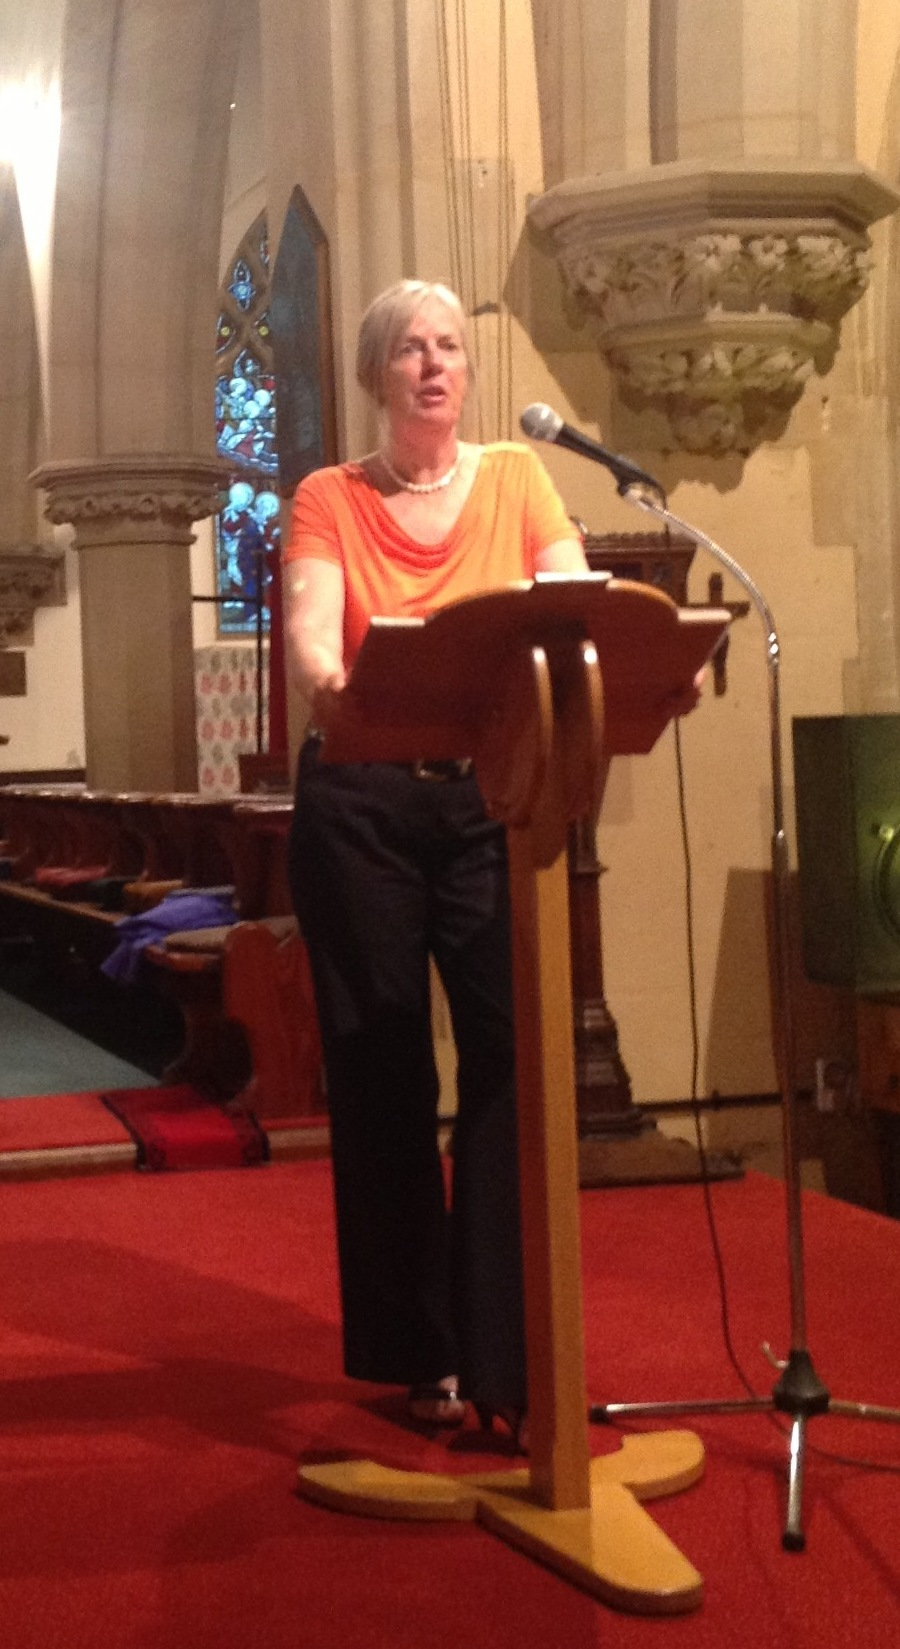 Cecilia Jorgensen narrating the Jenny Lind Gala Concert 2013 in Christ Church, Malvern, England.